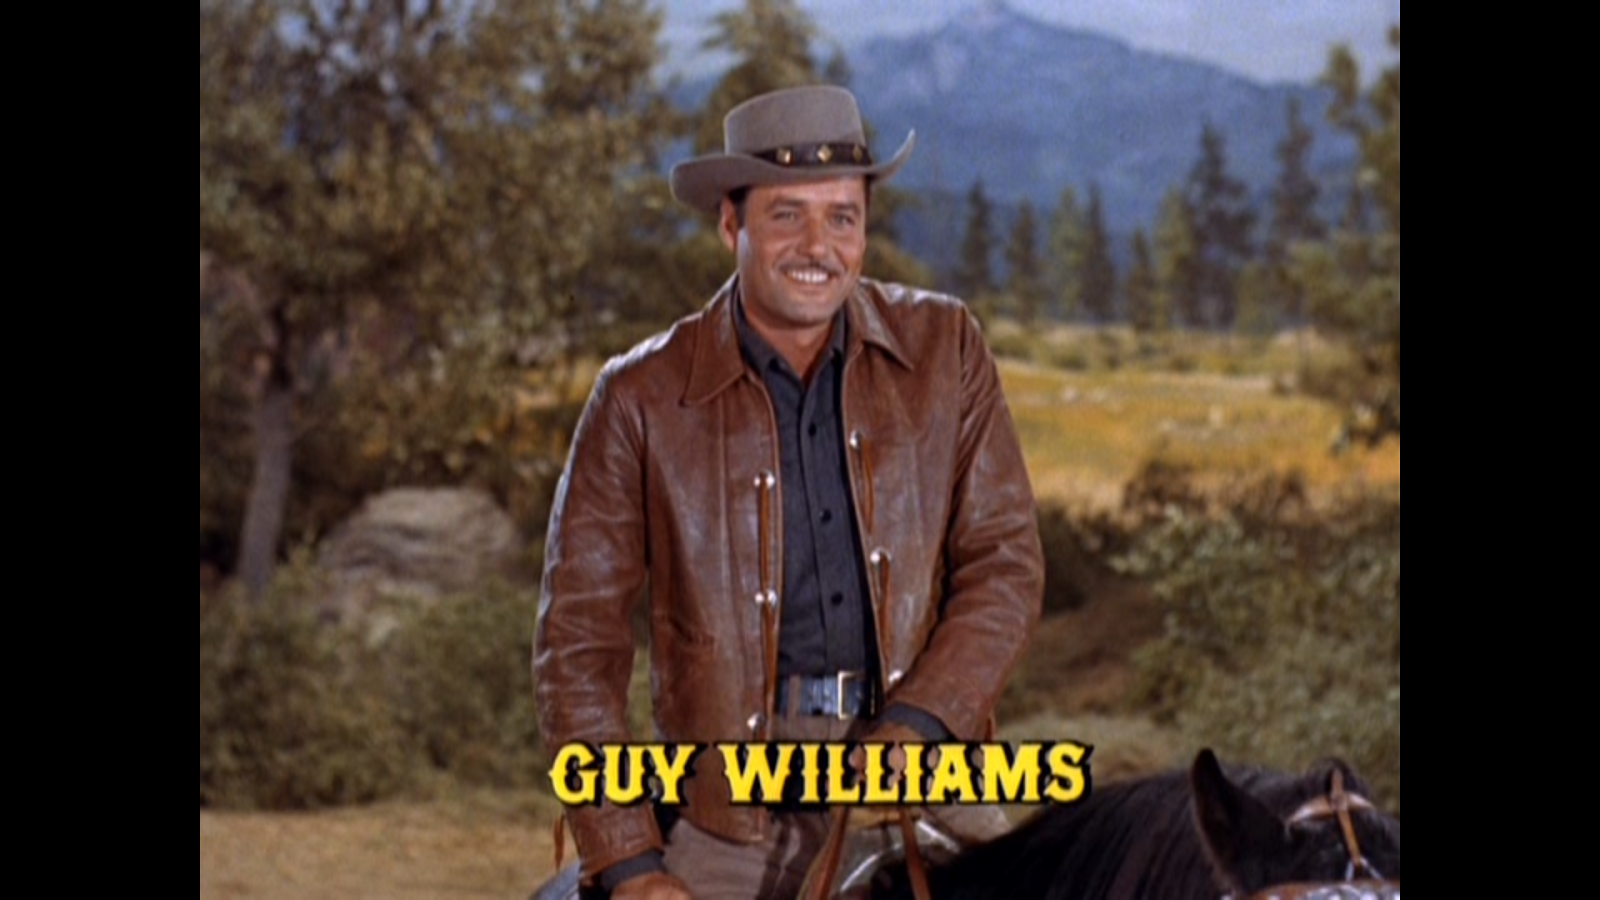 guy williams imdbguy williams zorro, guy williams filmography, guy williams nba, guy williams, guy williams bonanza, guy williams layton, guy williams jr, guy williams nz, guy williams como murio, guy williams ultimas fotos, guy williams twitter, guy williams en argentina, guy williams death, guy williams janice cooper, guy williams de que murio, guy williams imdb, guy williams photos, guy williams showjumper, guy williams pigeon song, guy williams mort dans la misere